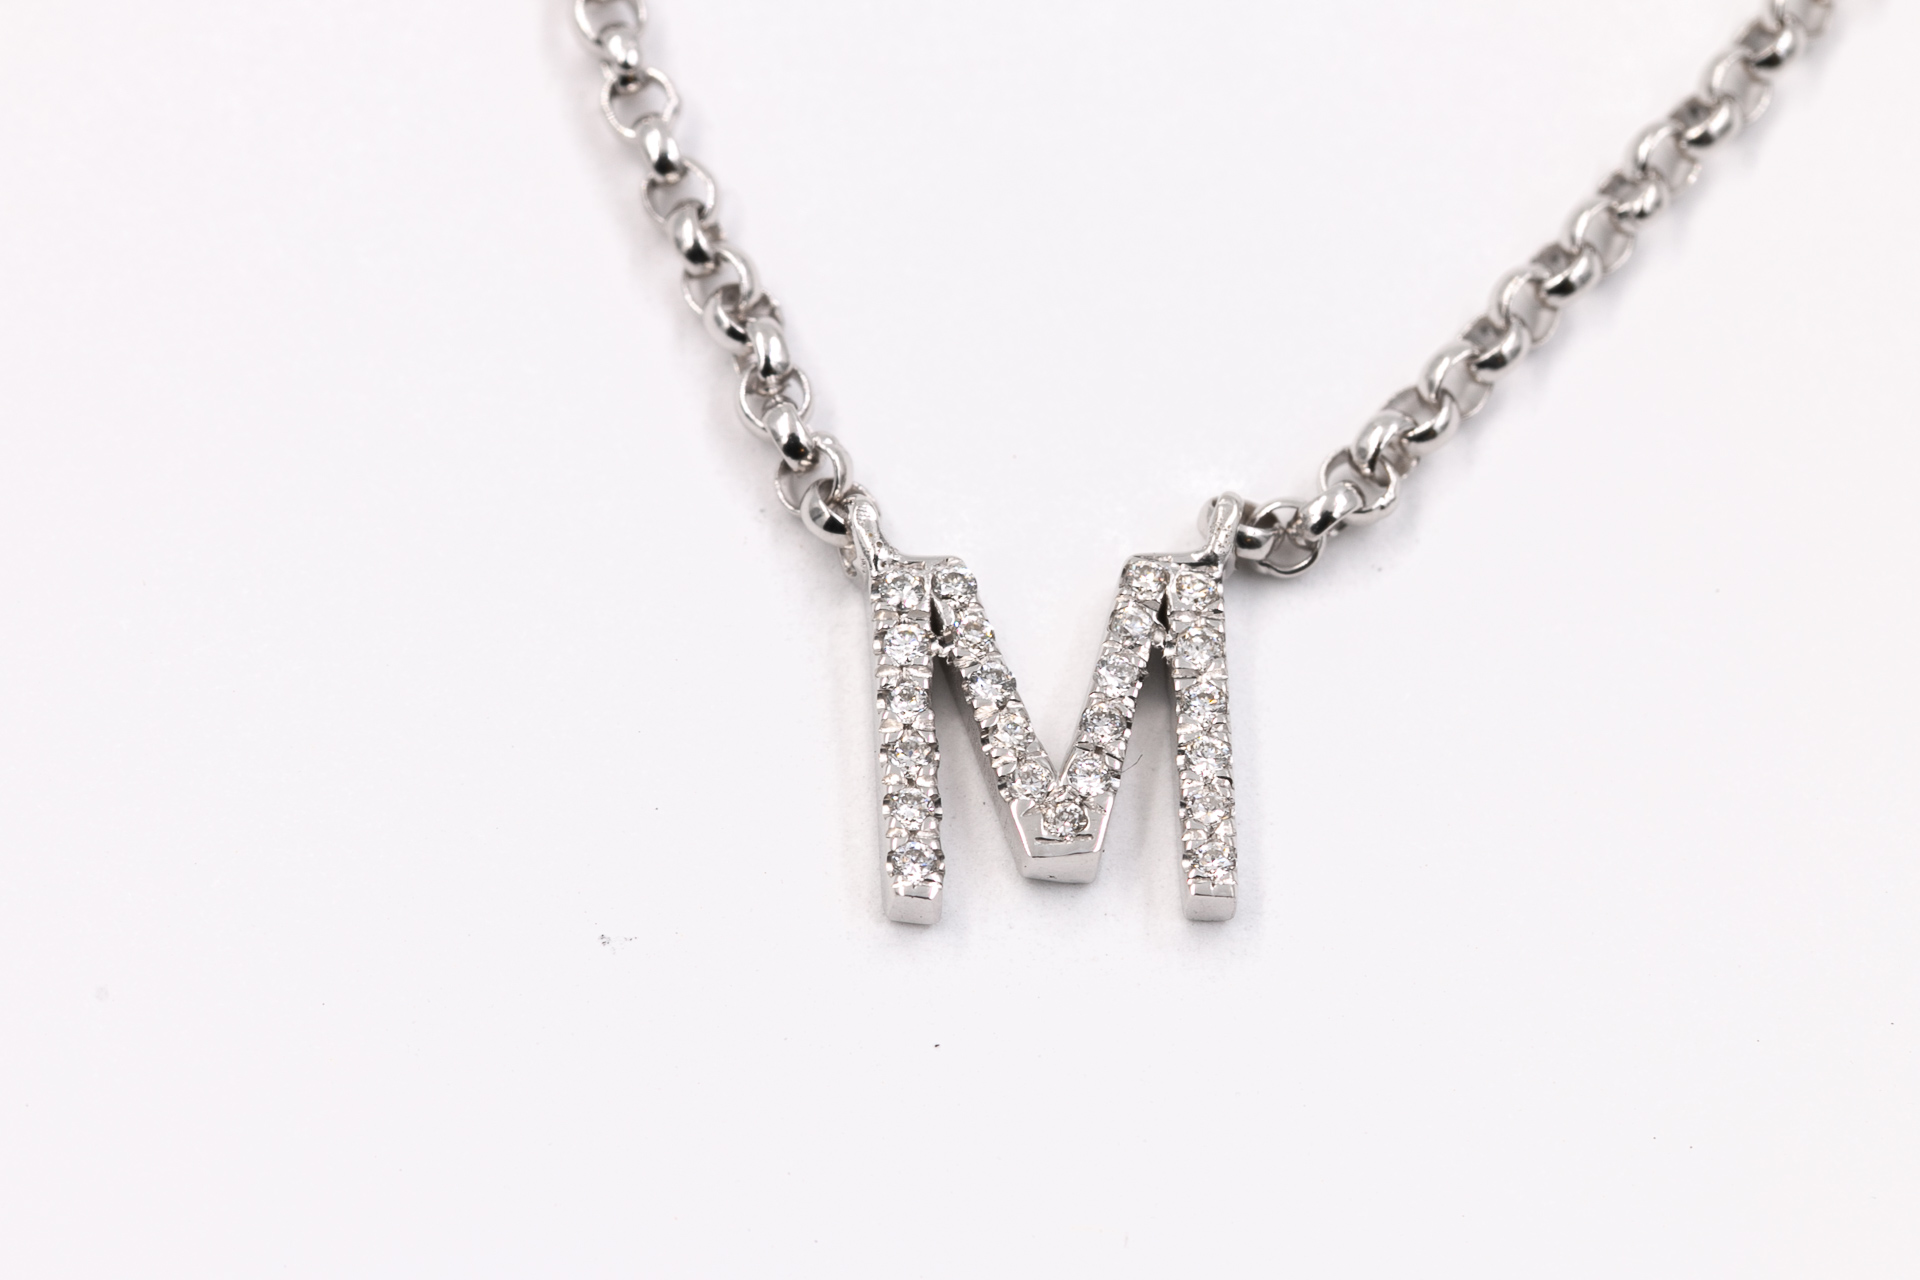 custom-diamond-necklace-jewelry-store